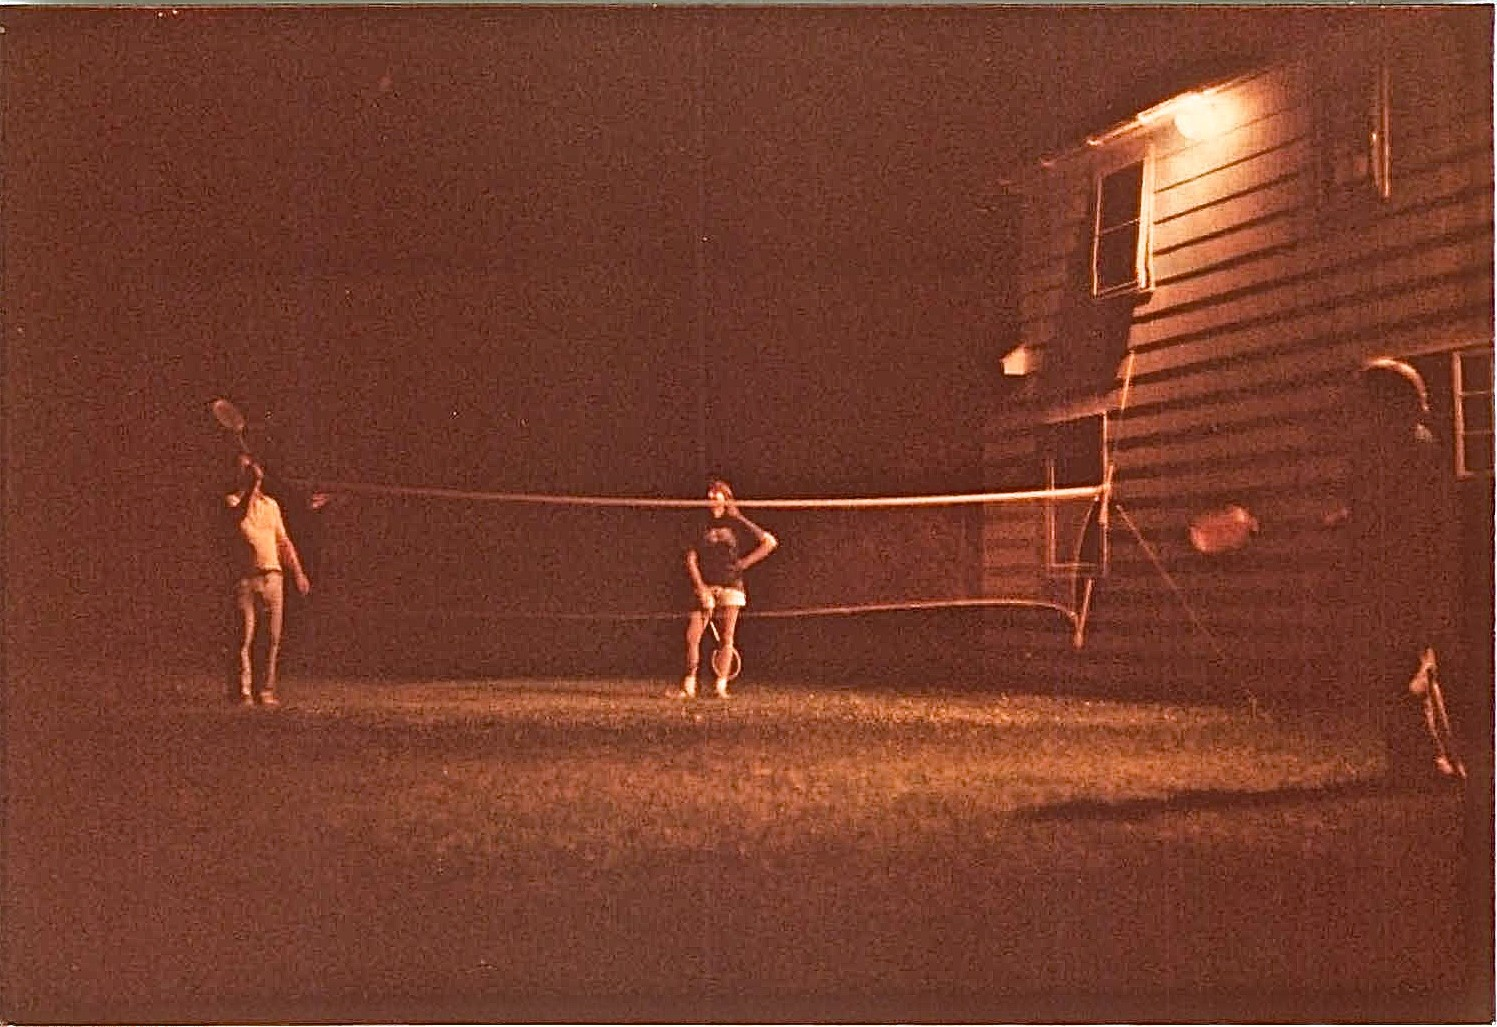 Badminton in backyard, Lockwood Rd. 1978 Al, Celeste, & Eleanor Gudas